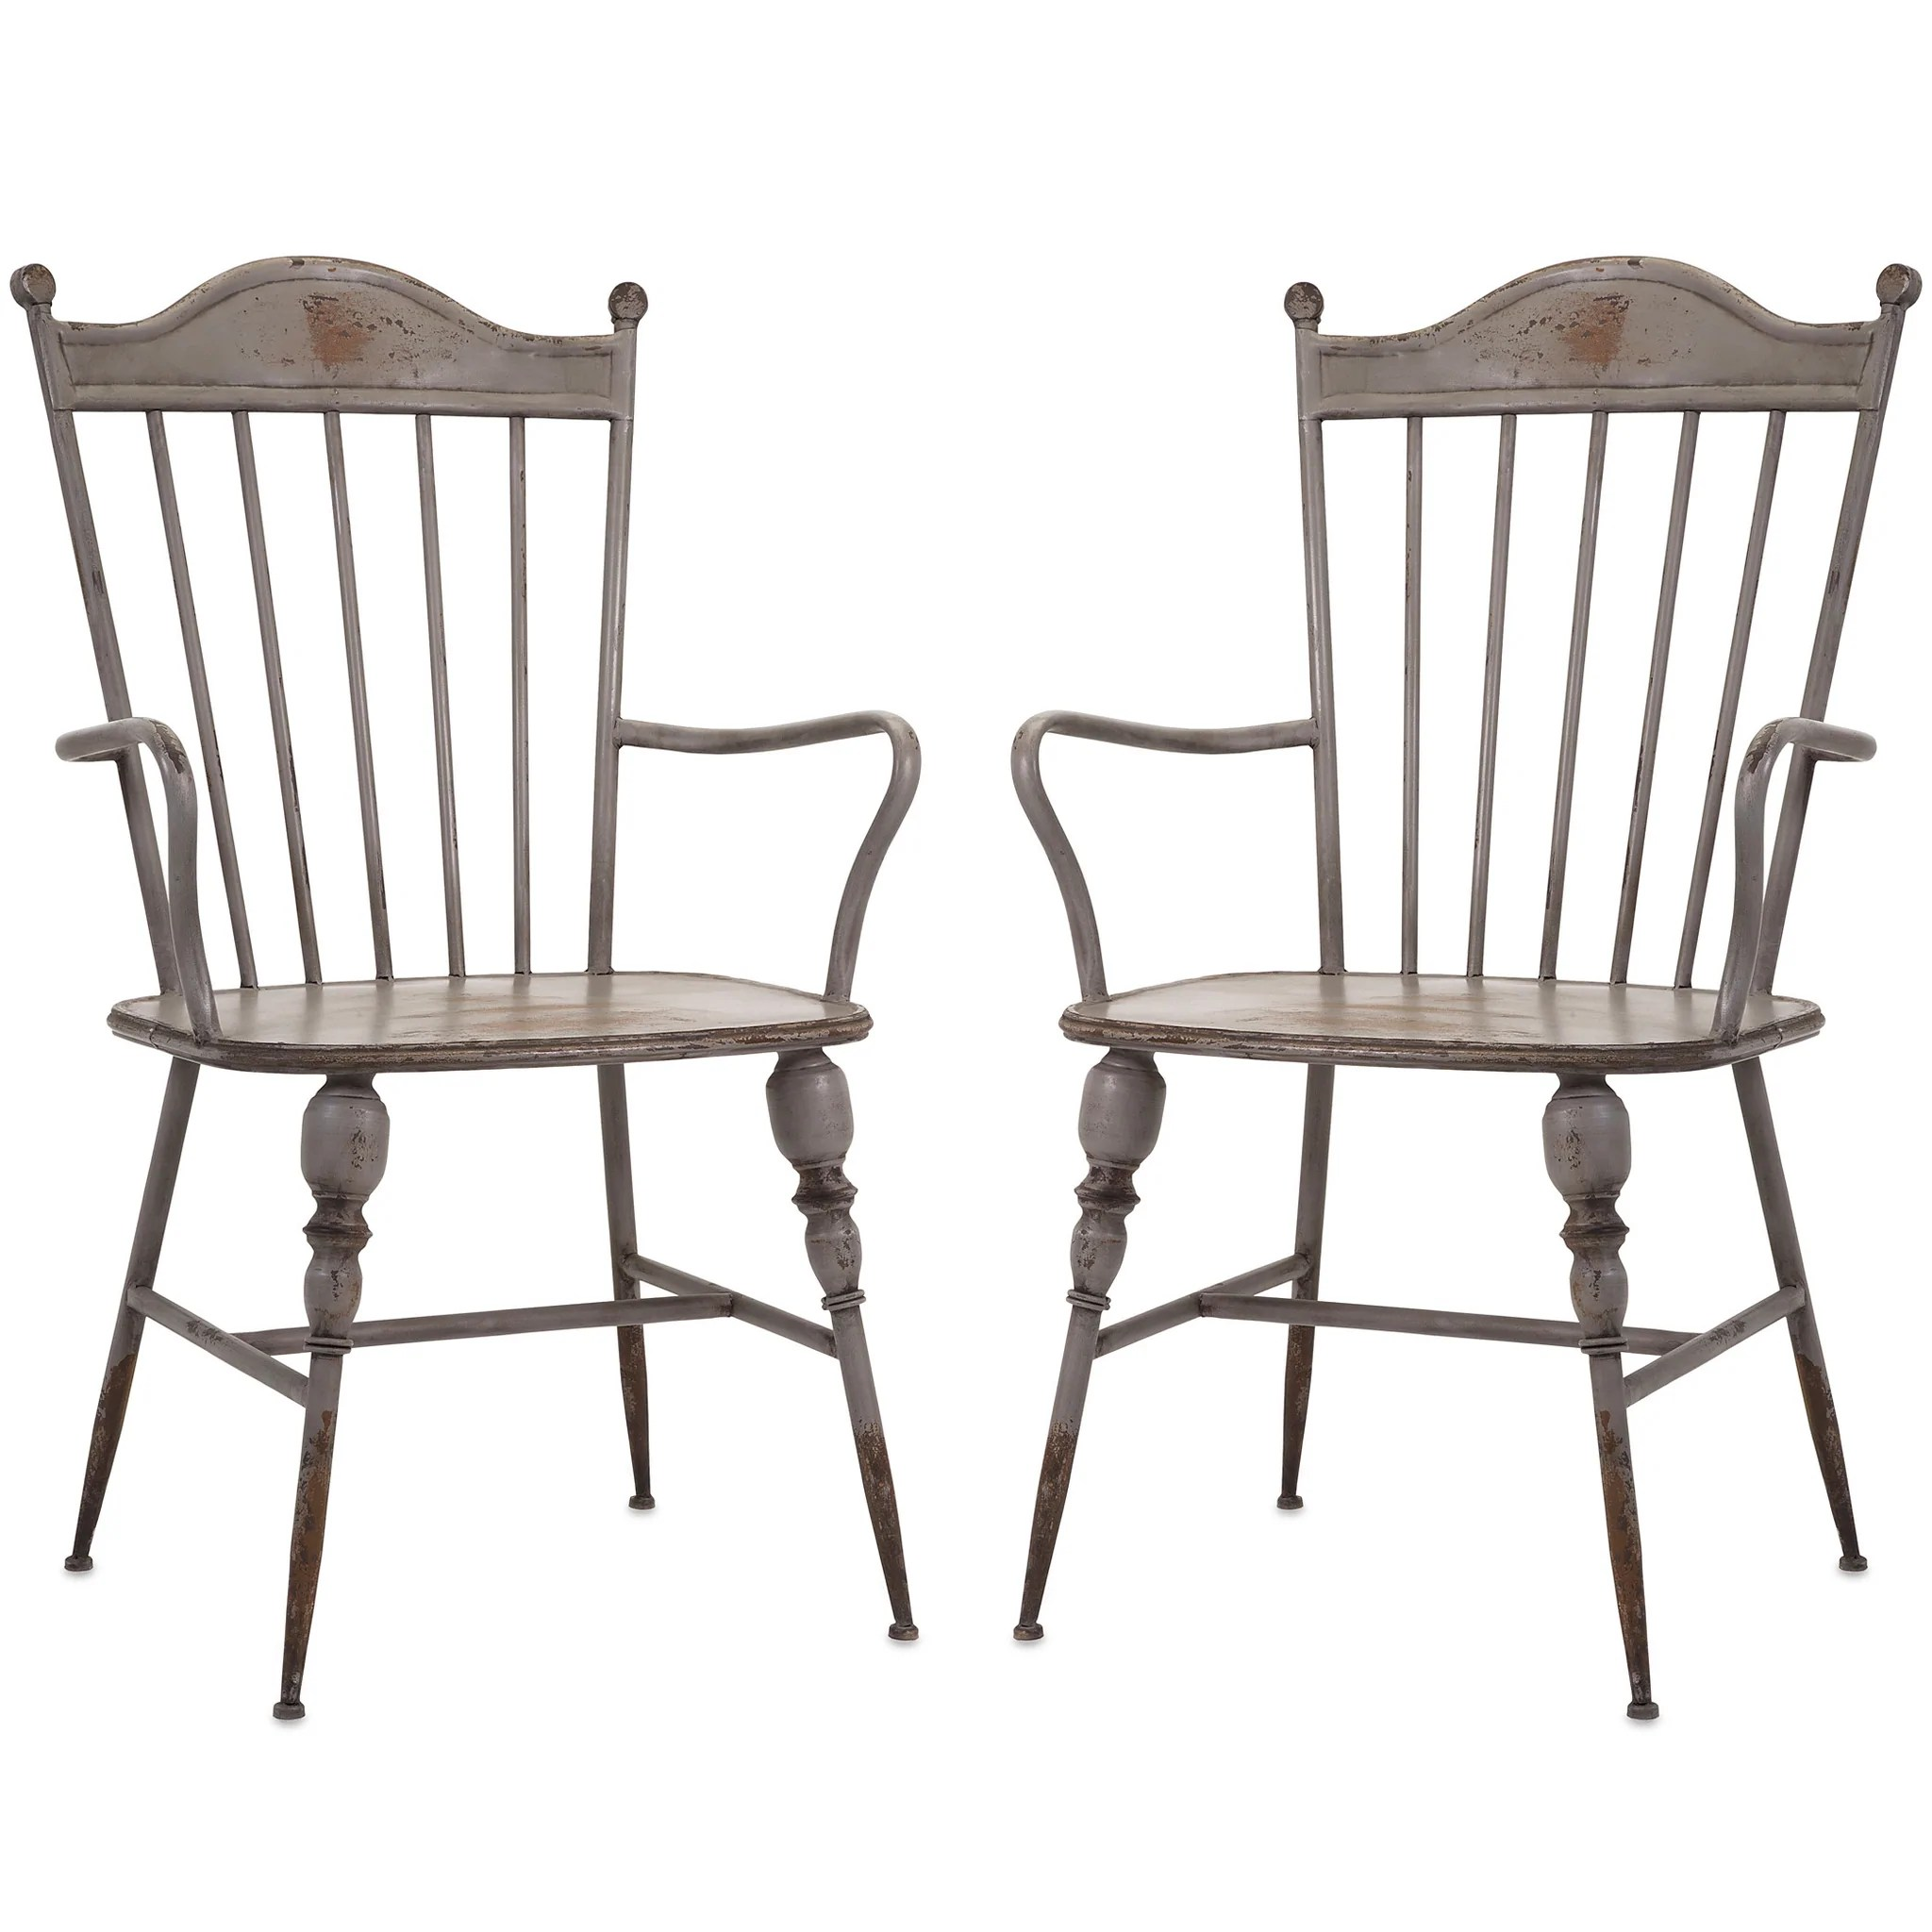 rustic metal dining chairs medline ultralight transport chair gray farmhouse industrial modern arm